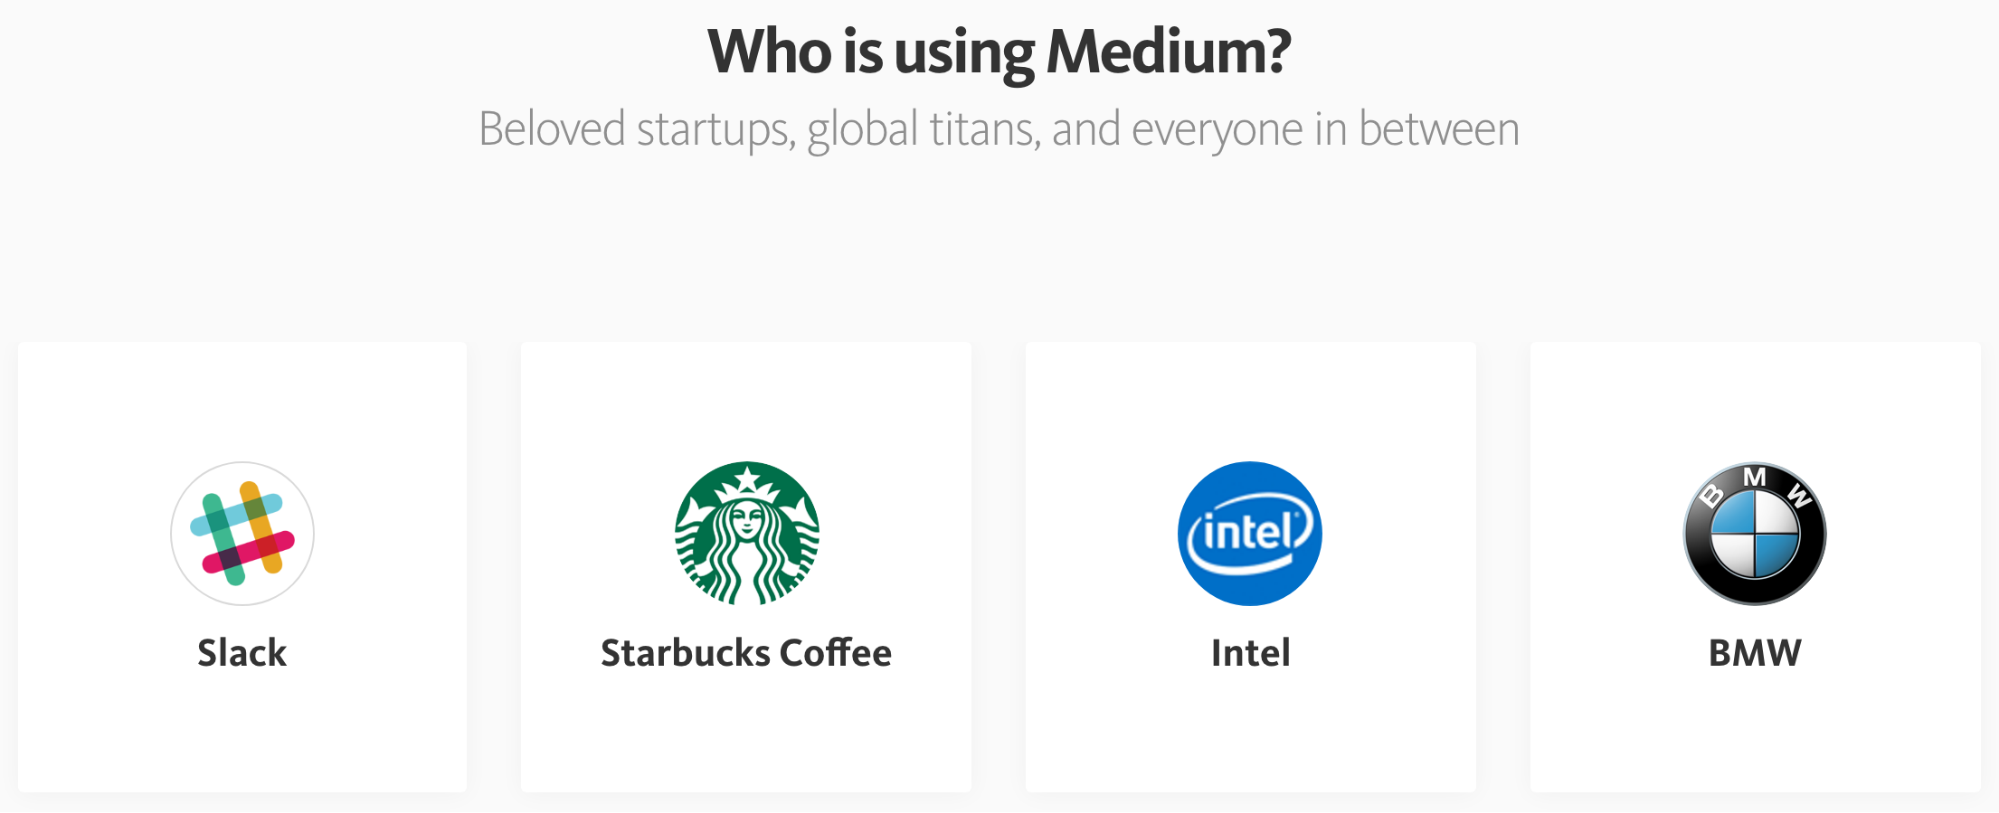 Screenshot showing Slack as one of the companies that use Medium